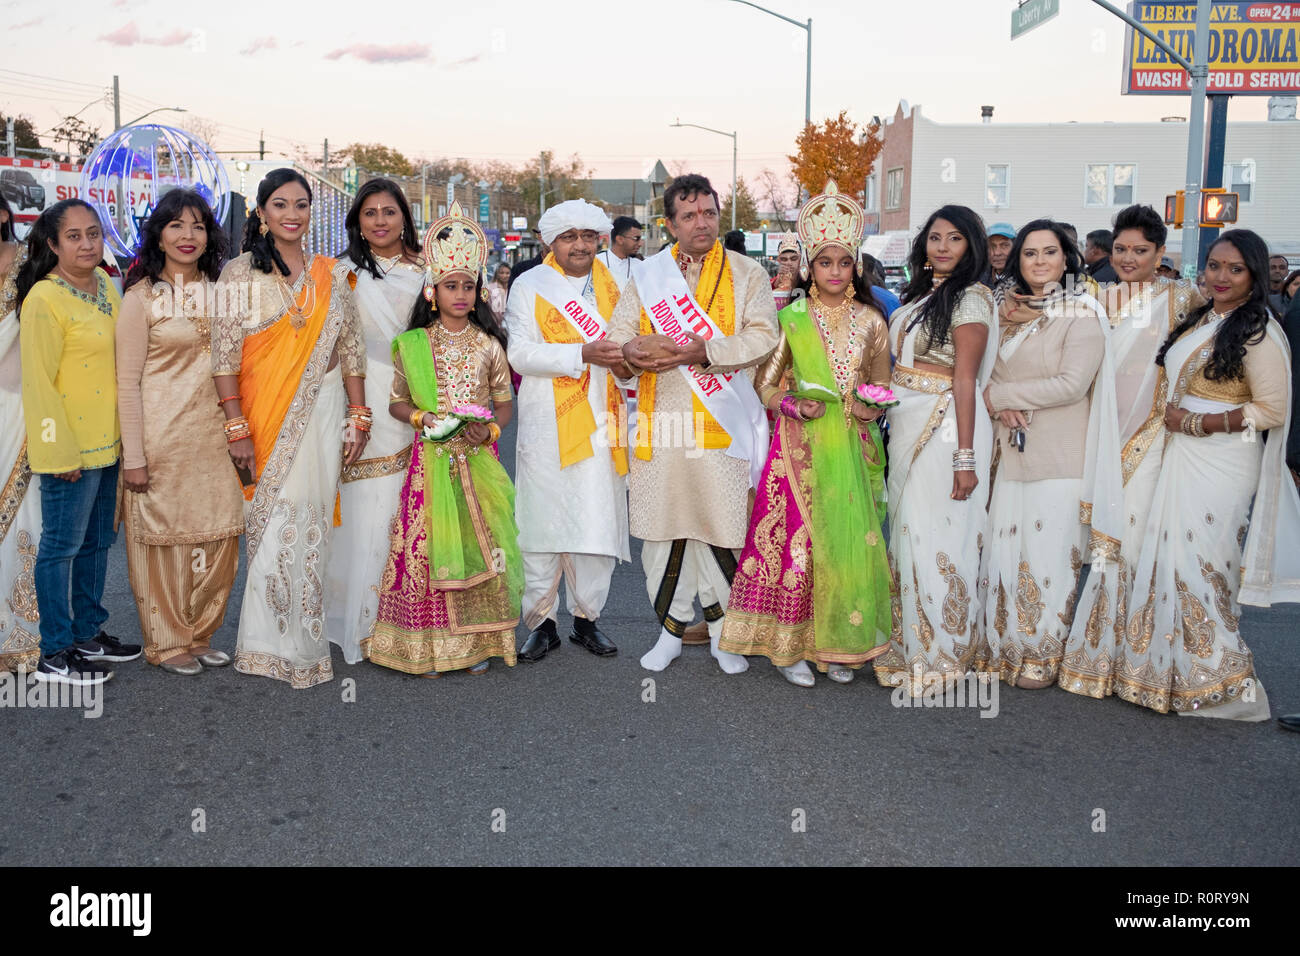 Participants in the Diwali motorcade, many in the same sari, pose with the Grand Marshall & special guest. In South Richmond Hill, Queens, New York. - Stock Image